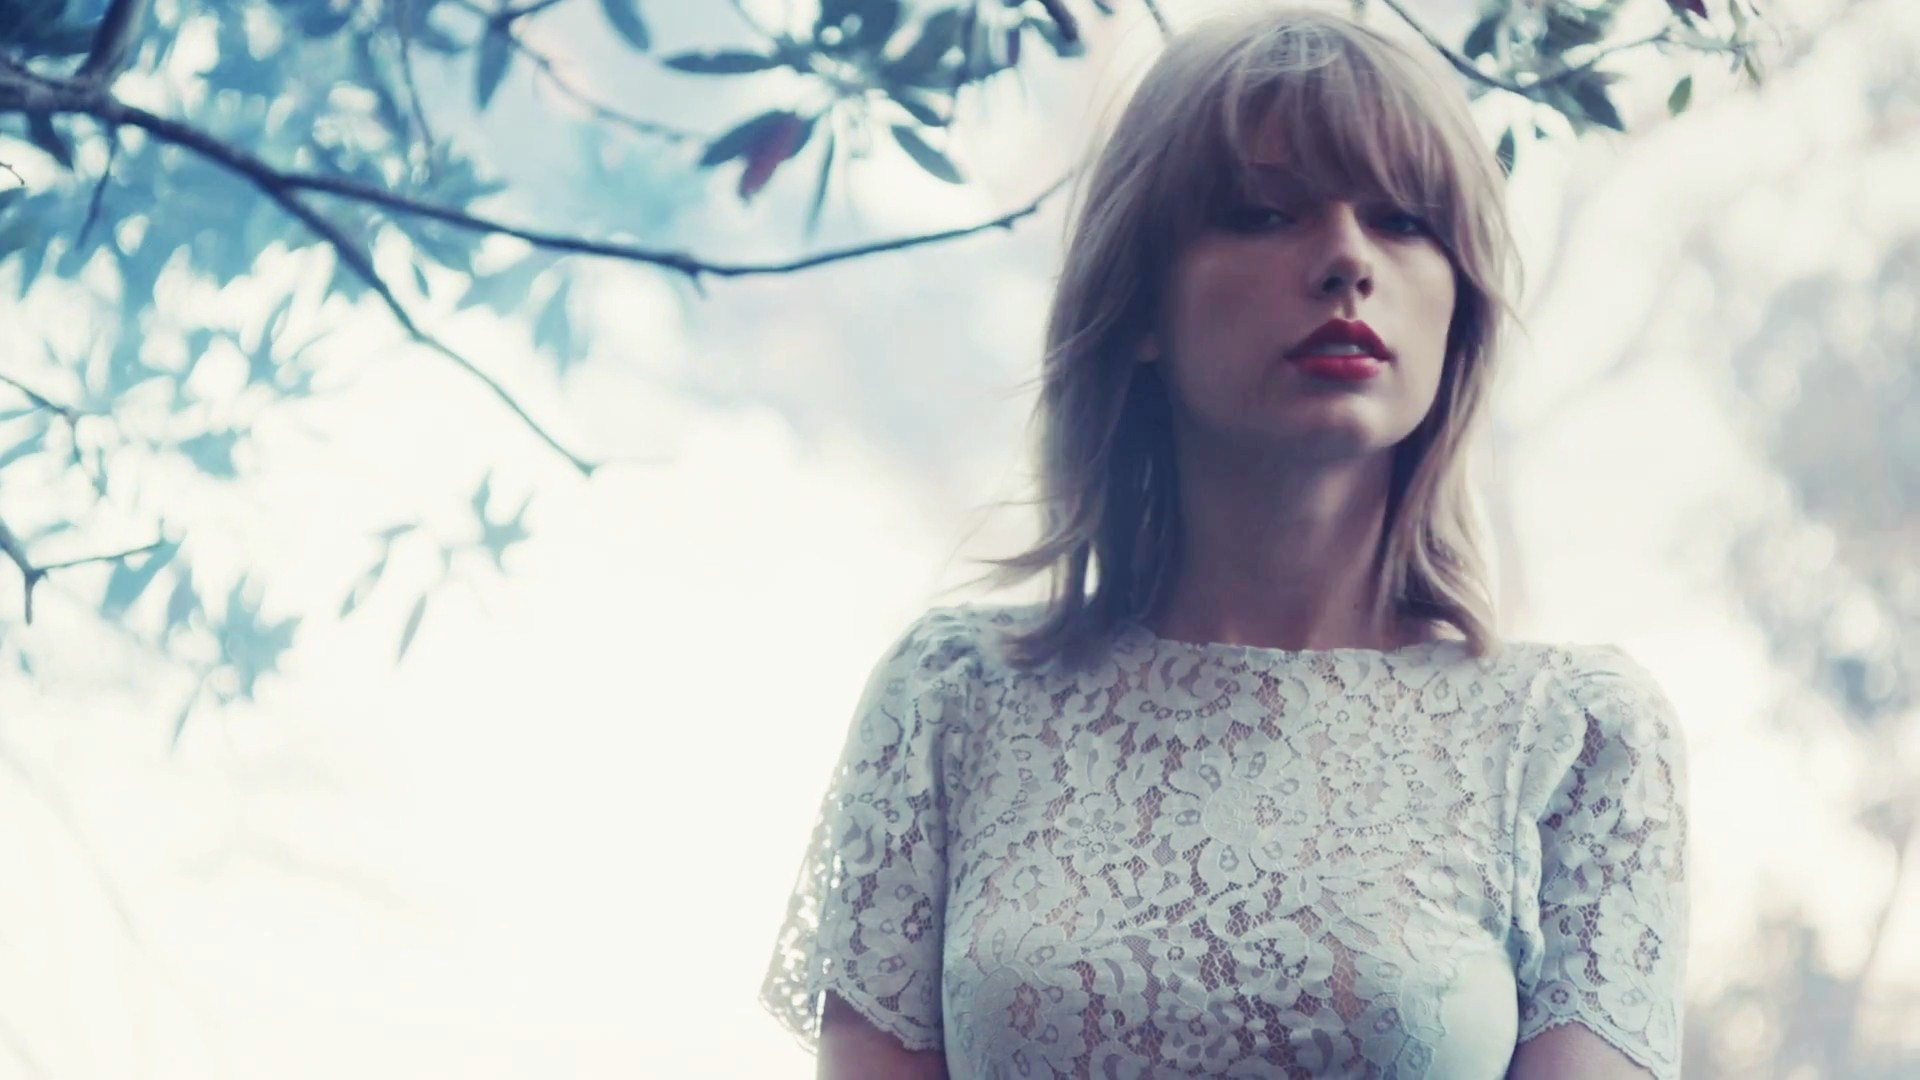 Taylor Swift Picture wallpapers 81 Wallpapers HD 1920x1080